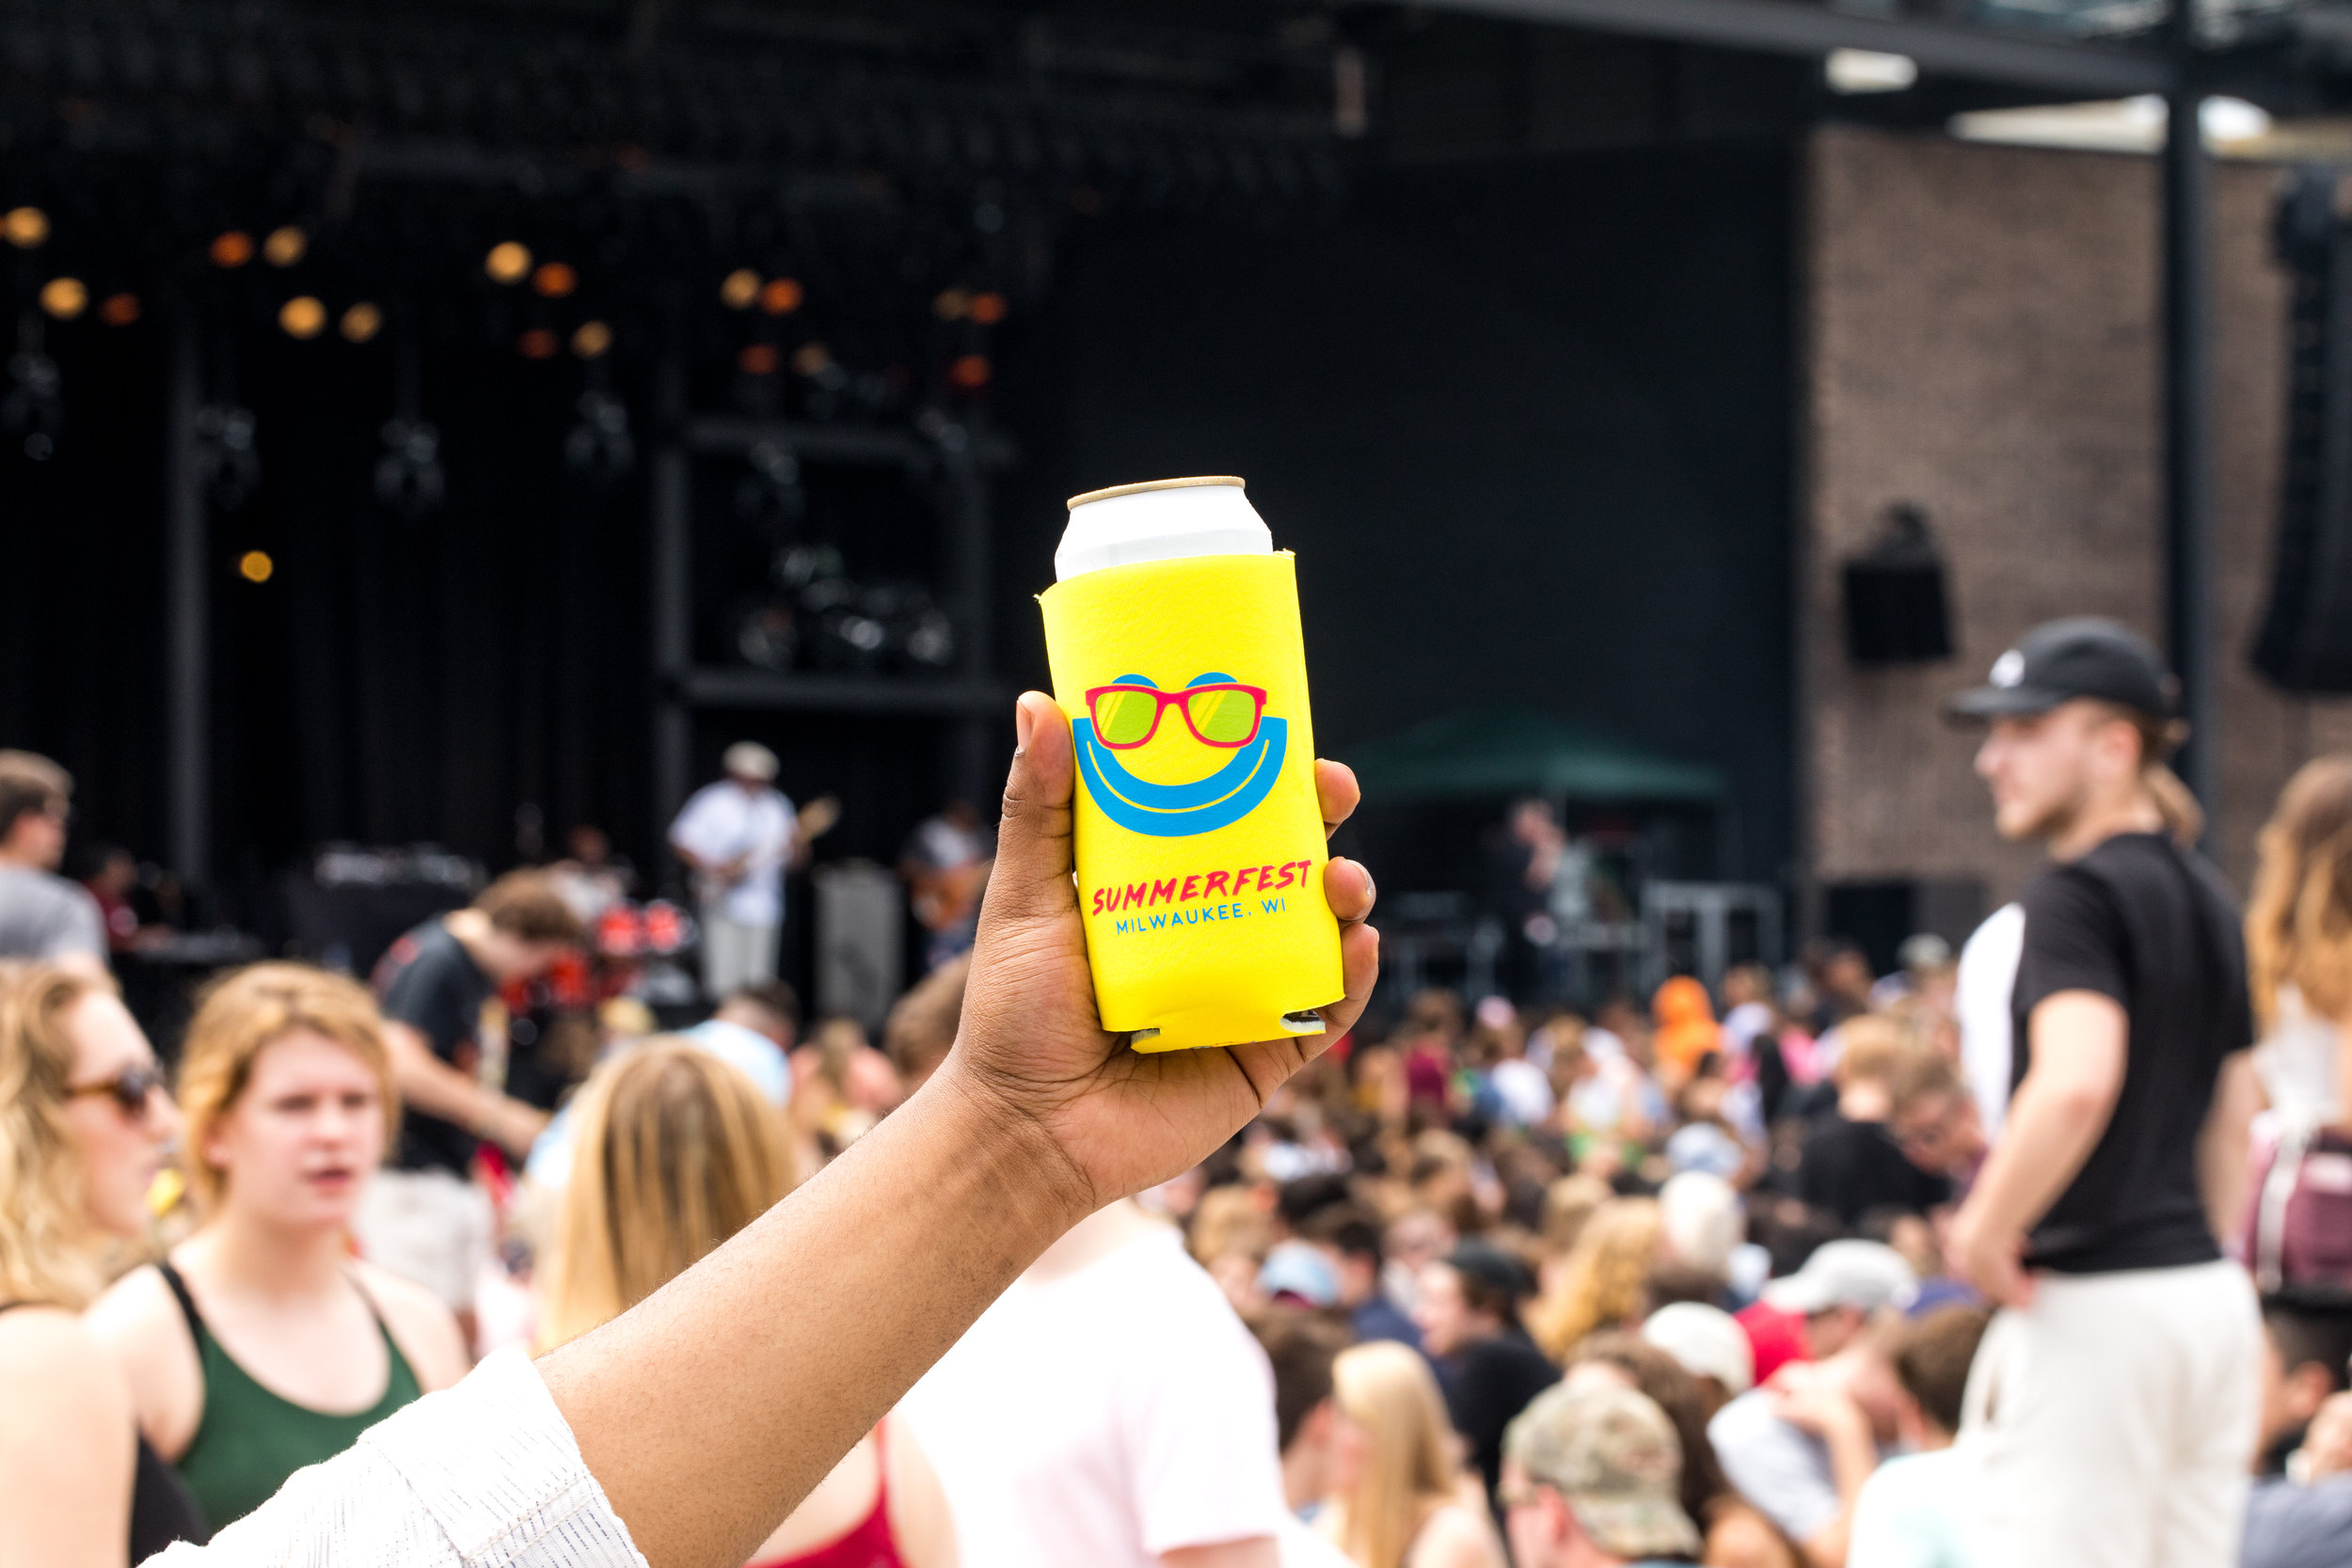 Don't forget to snag a Summerfest koozie!